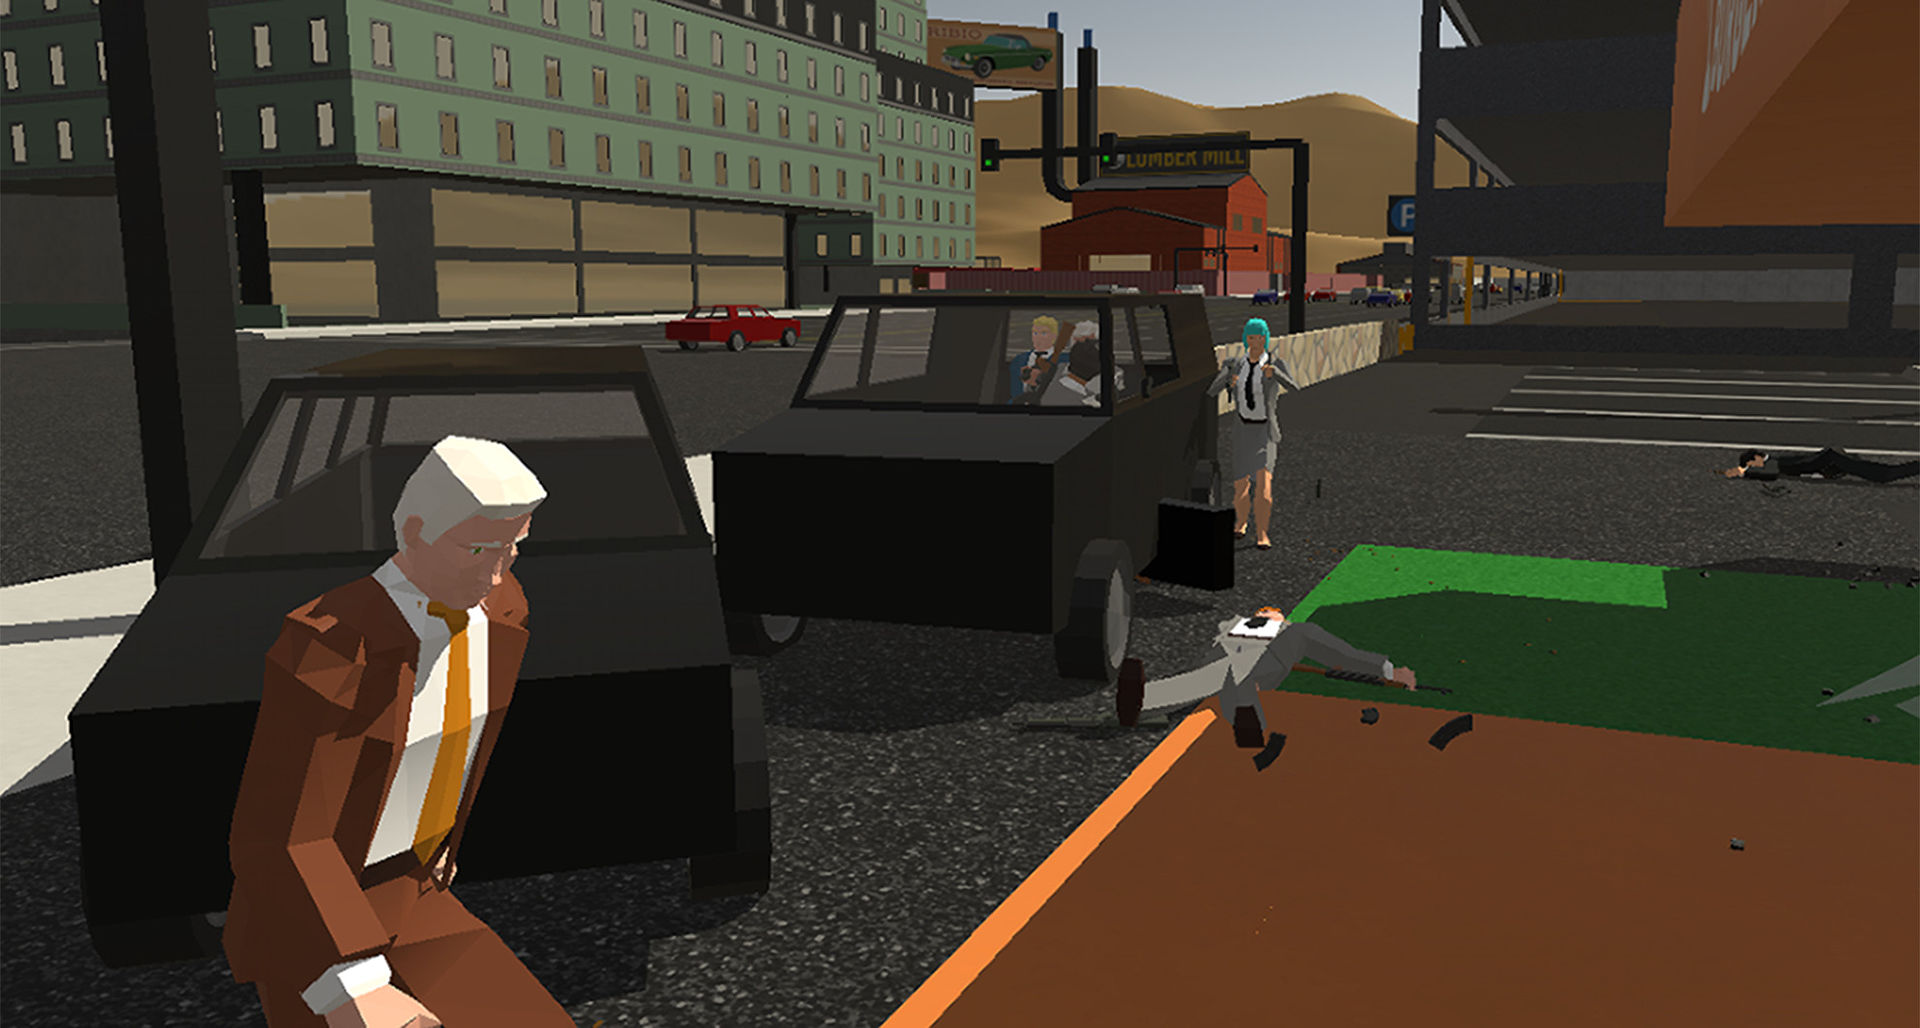 After nine years, Sub Rosa finally reaches early access